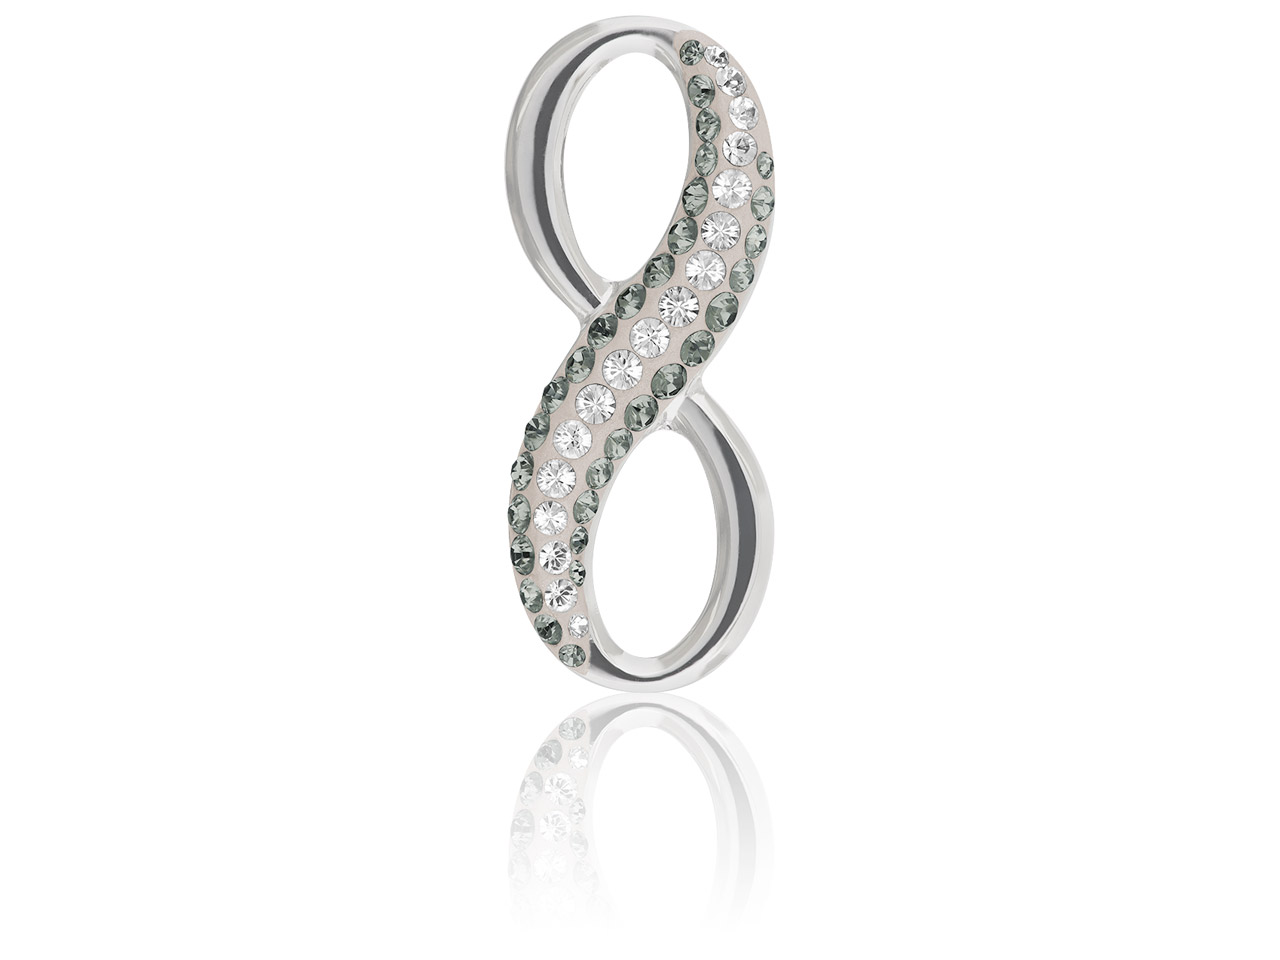 Swarovski Crystal Pave Infinity    Pendant, 20mm, Black Diamond